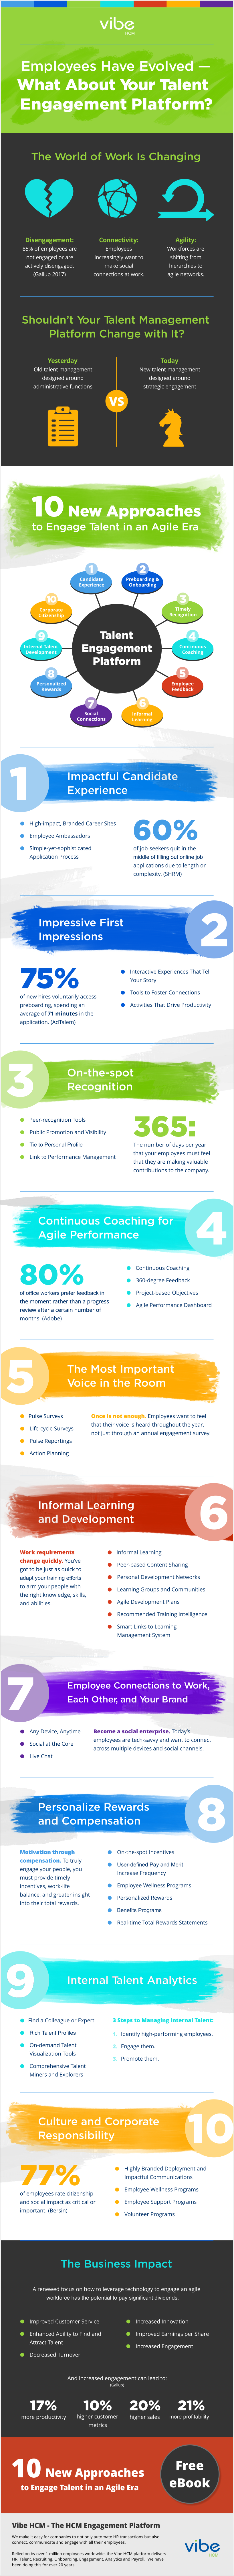 Talent Engagement Platform Infographic.png